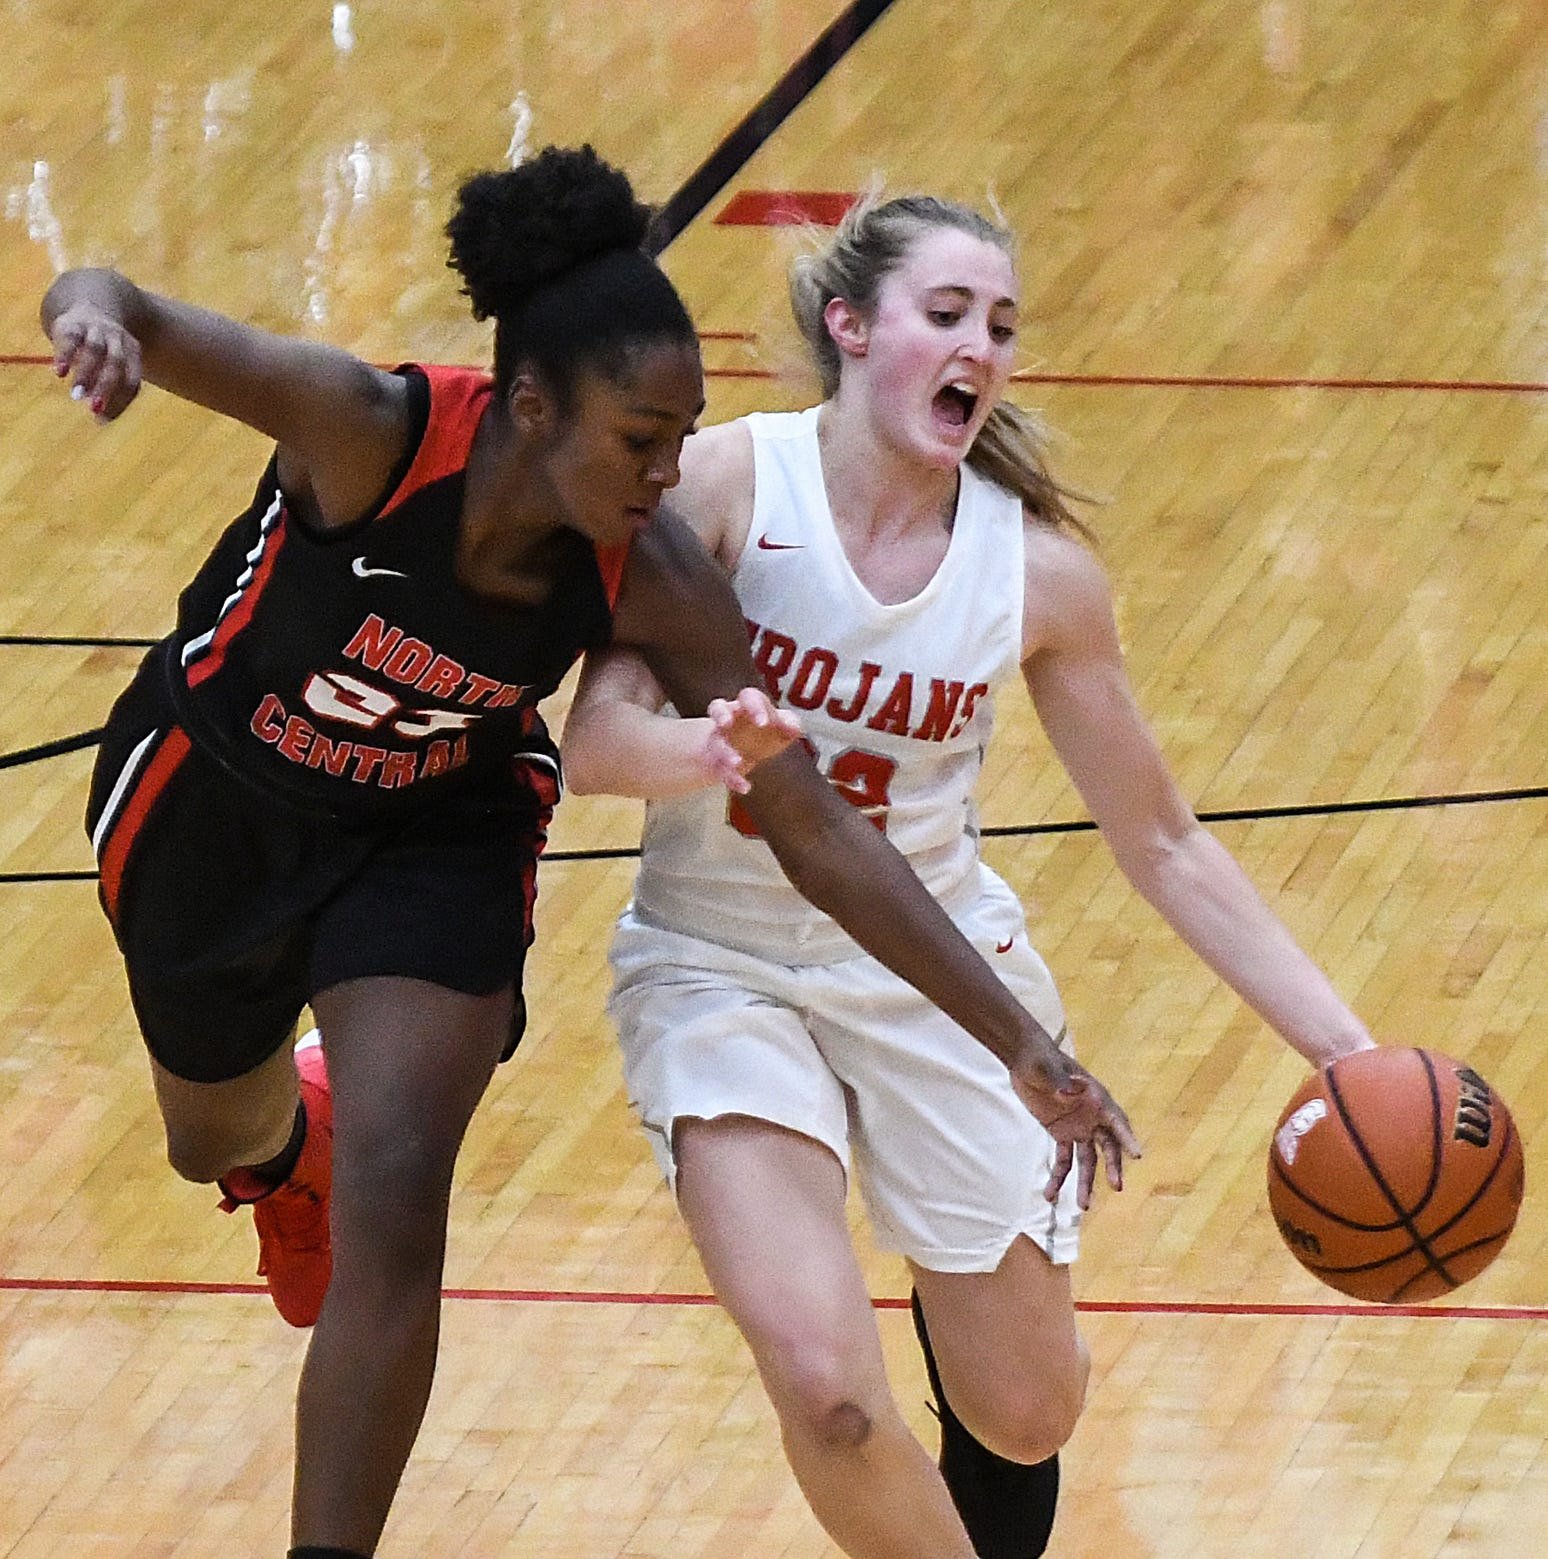 North Central Panthers guard Jasmine McWilliams (23) tries to knock the ball away from Center Grove Trojans Ella Thompson (22) in the second half of the game at Center Grove High School in Greenwood, Ind., Thursday, Jan. 10, 2019. Center Grove defeated North Central, 51-44.